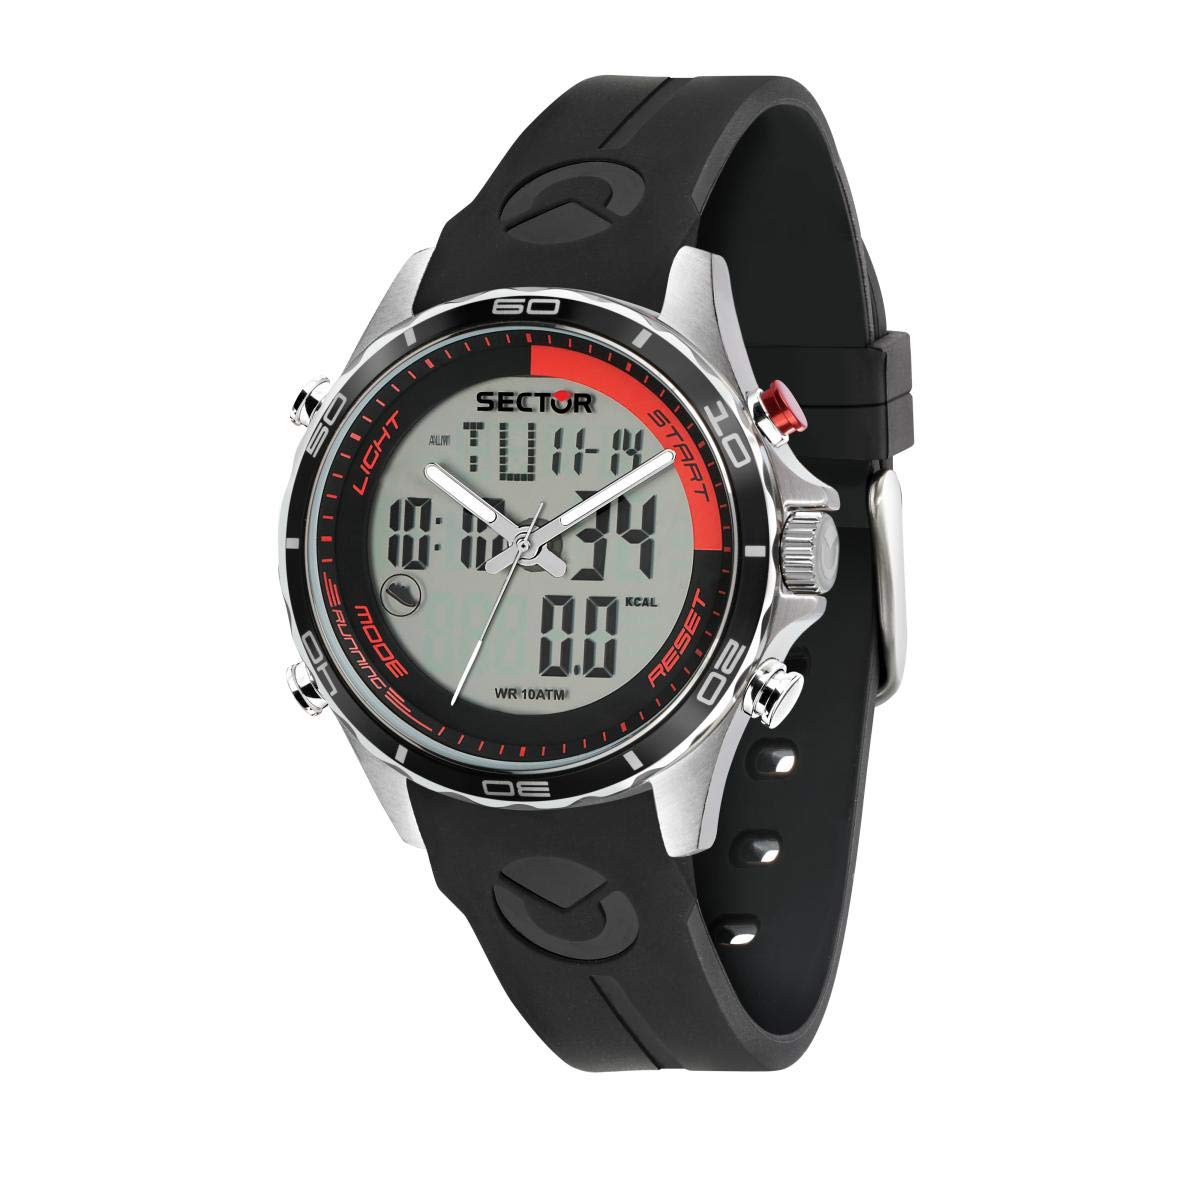 Sector No Limits Mens Master Stainless Steel Analog-Quartz Sport Watch with Silicone Strap, Black, 18 (Model: R3271615002)